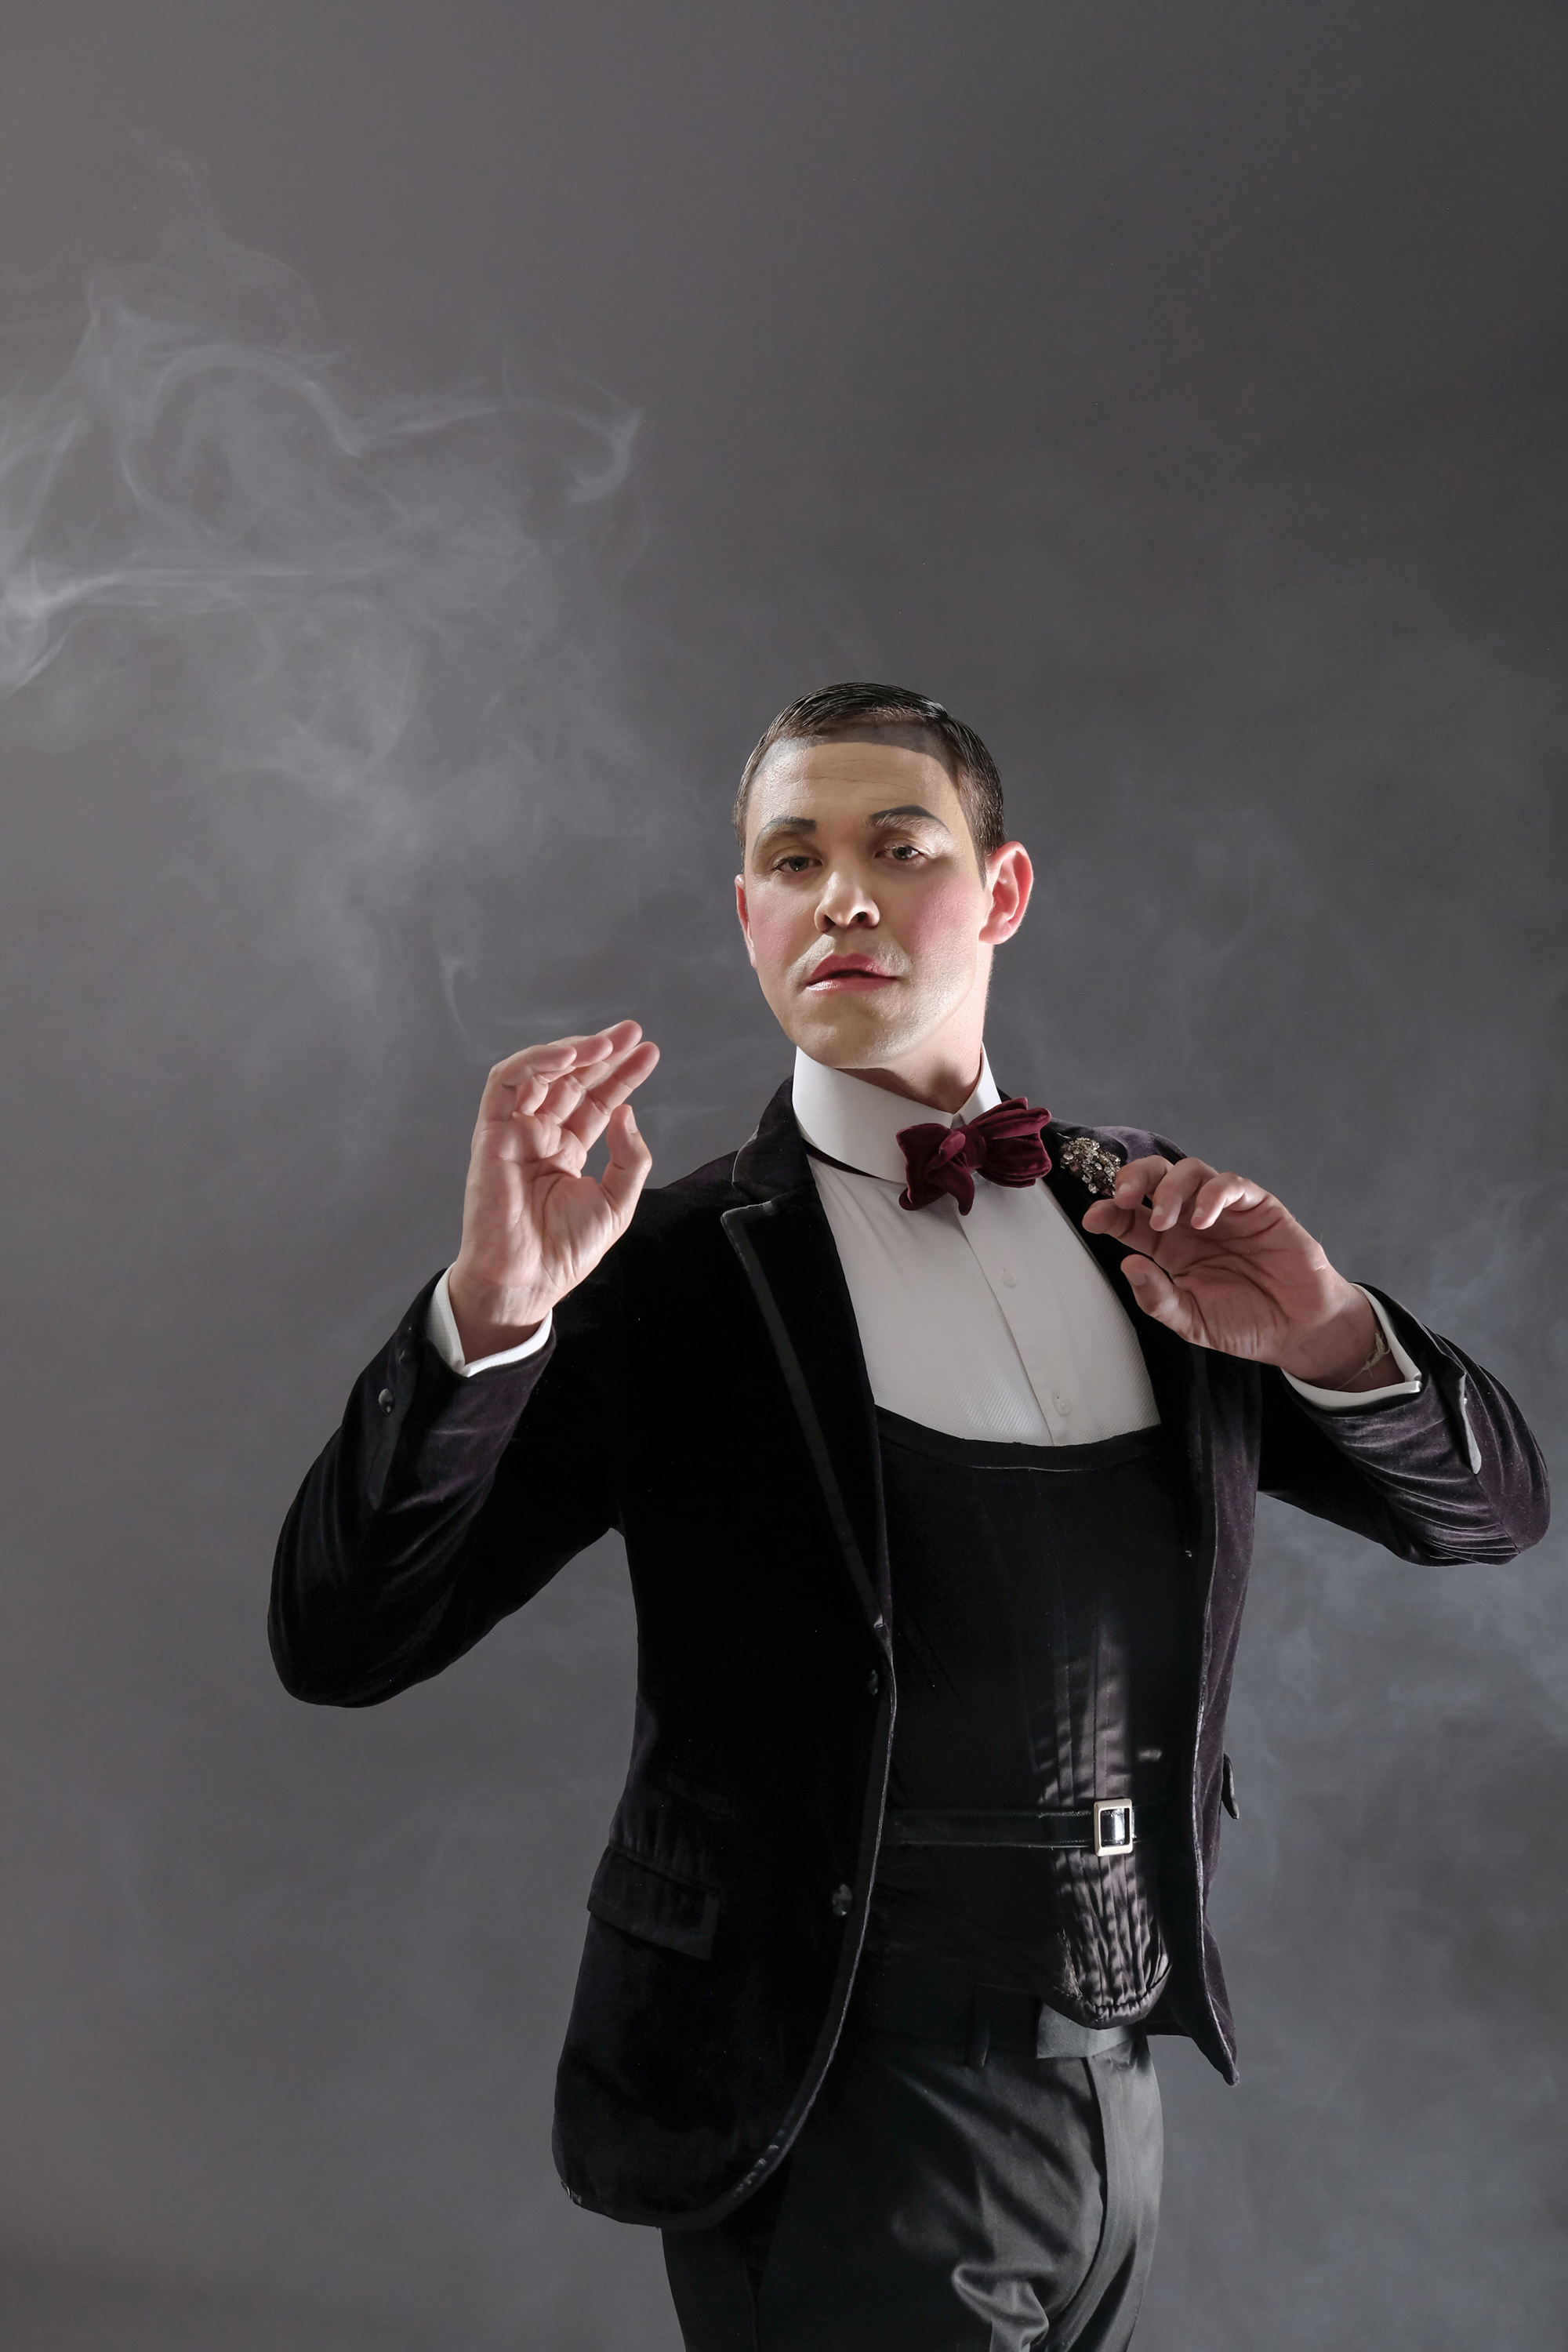 Cabaret 2017-6020 Will Young as the Emcee in Cabaret%2c credit JIM MARKS.jpg